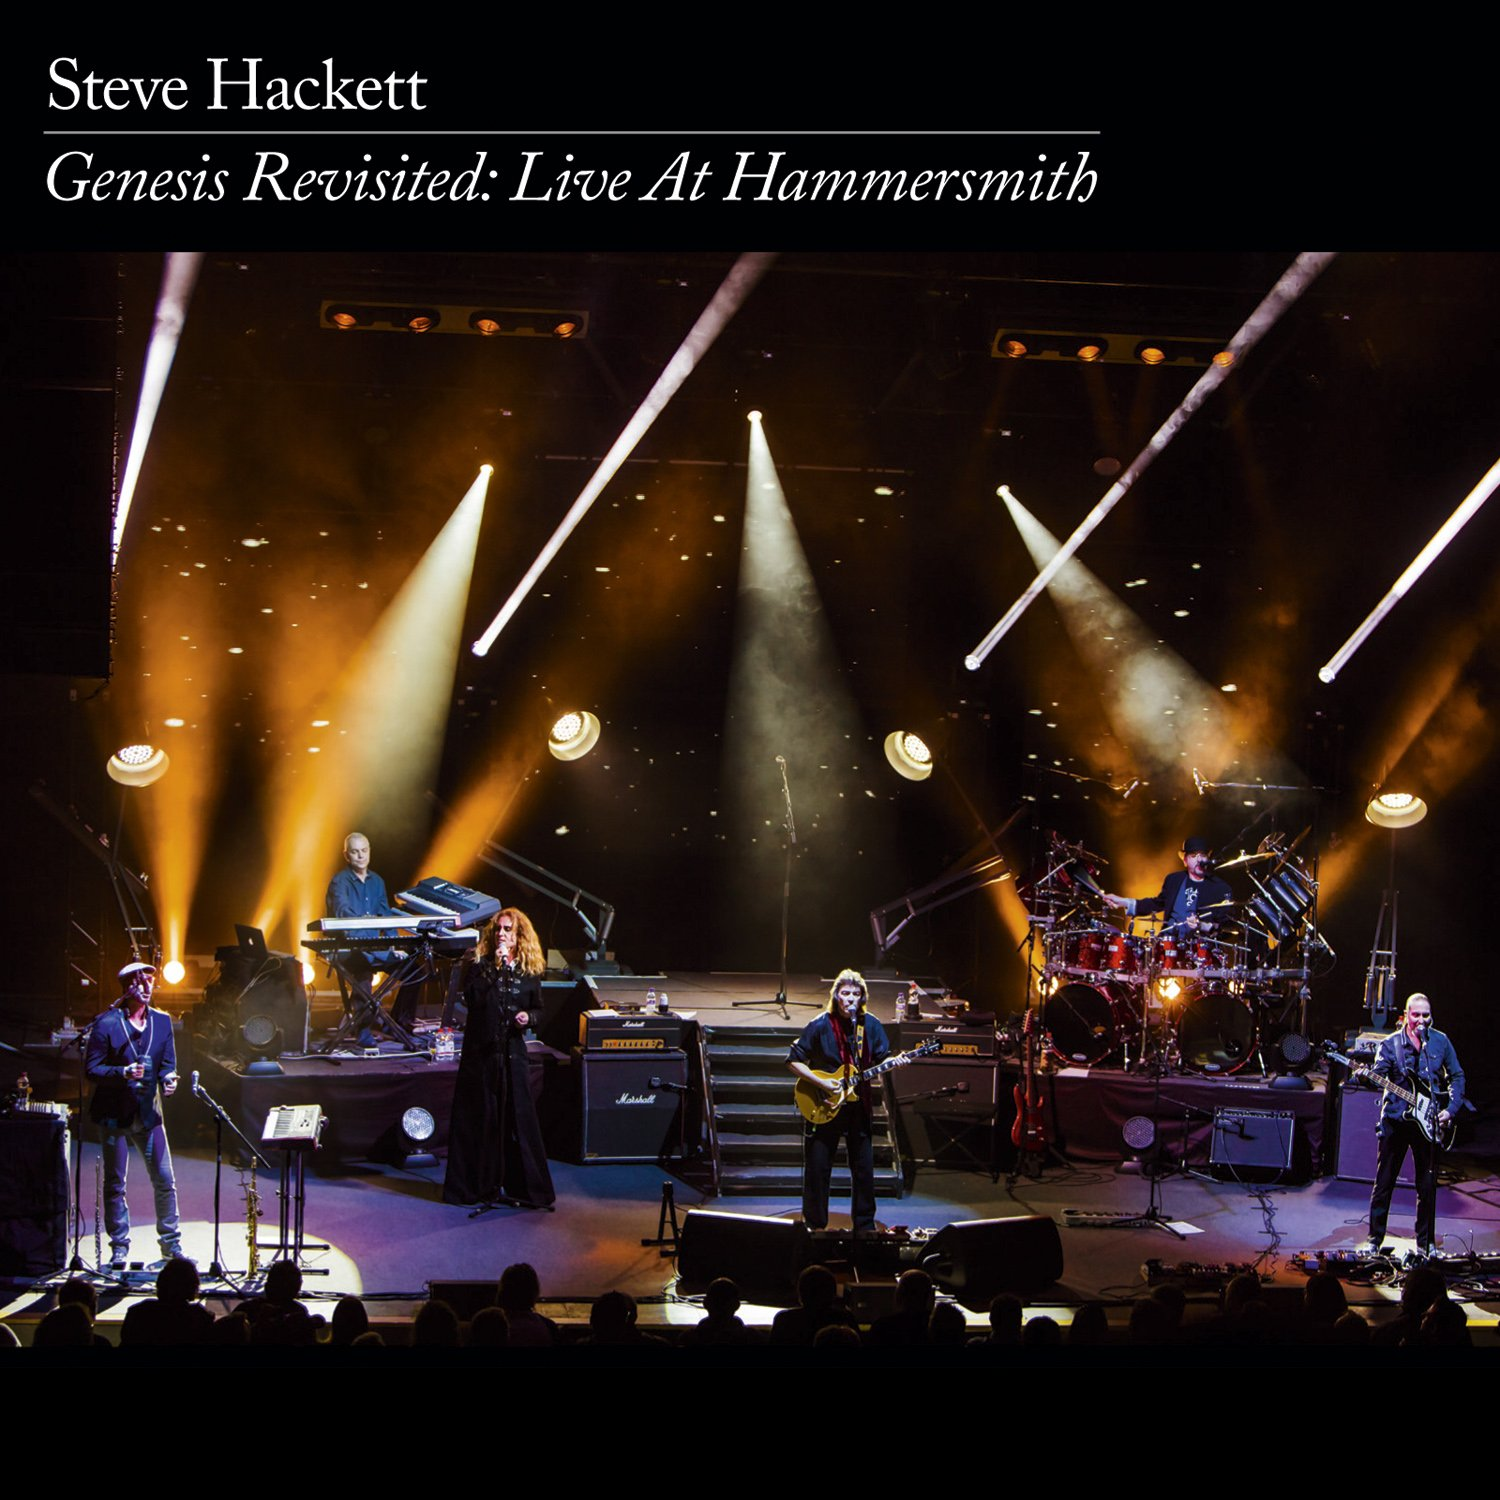 CD : Steve Hackett - Genesis Revisited: Live at Hammersmith (With DVD, Boxed Set, Digipack Packaging, 5 Disc)